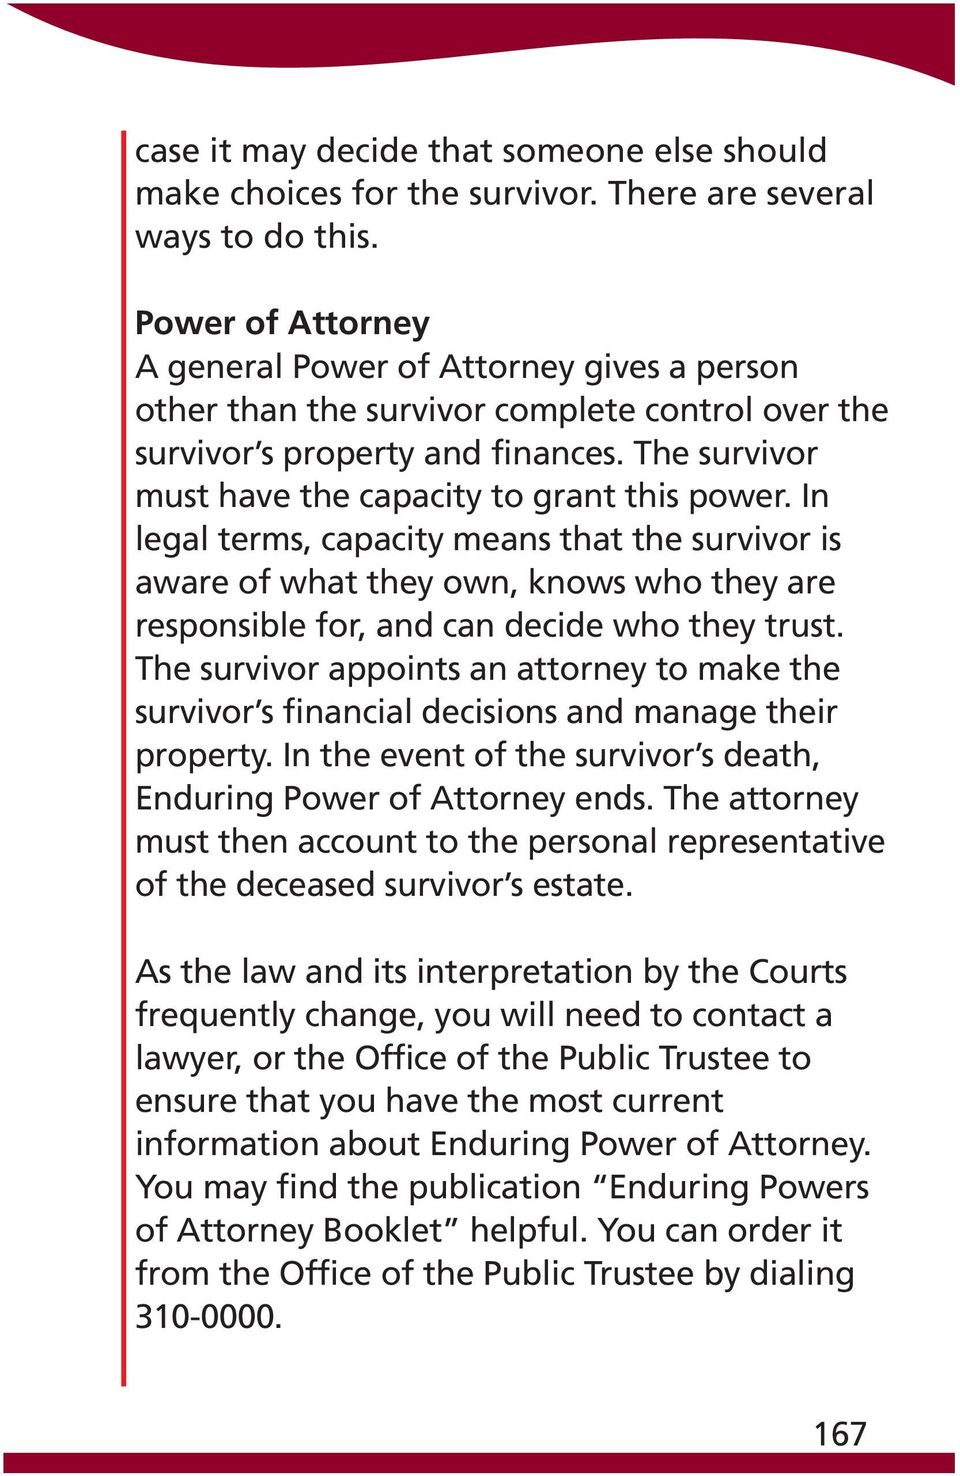 The survivor must have the capacity to grant this power. In legal terms, capacity means that the survivor is aware of what they own, knows who they are responsible for, and can decide who they trust.